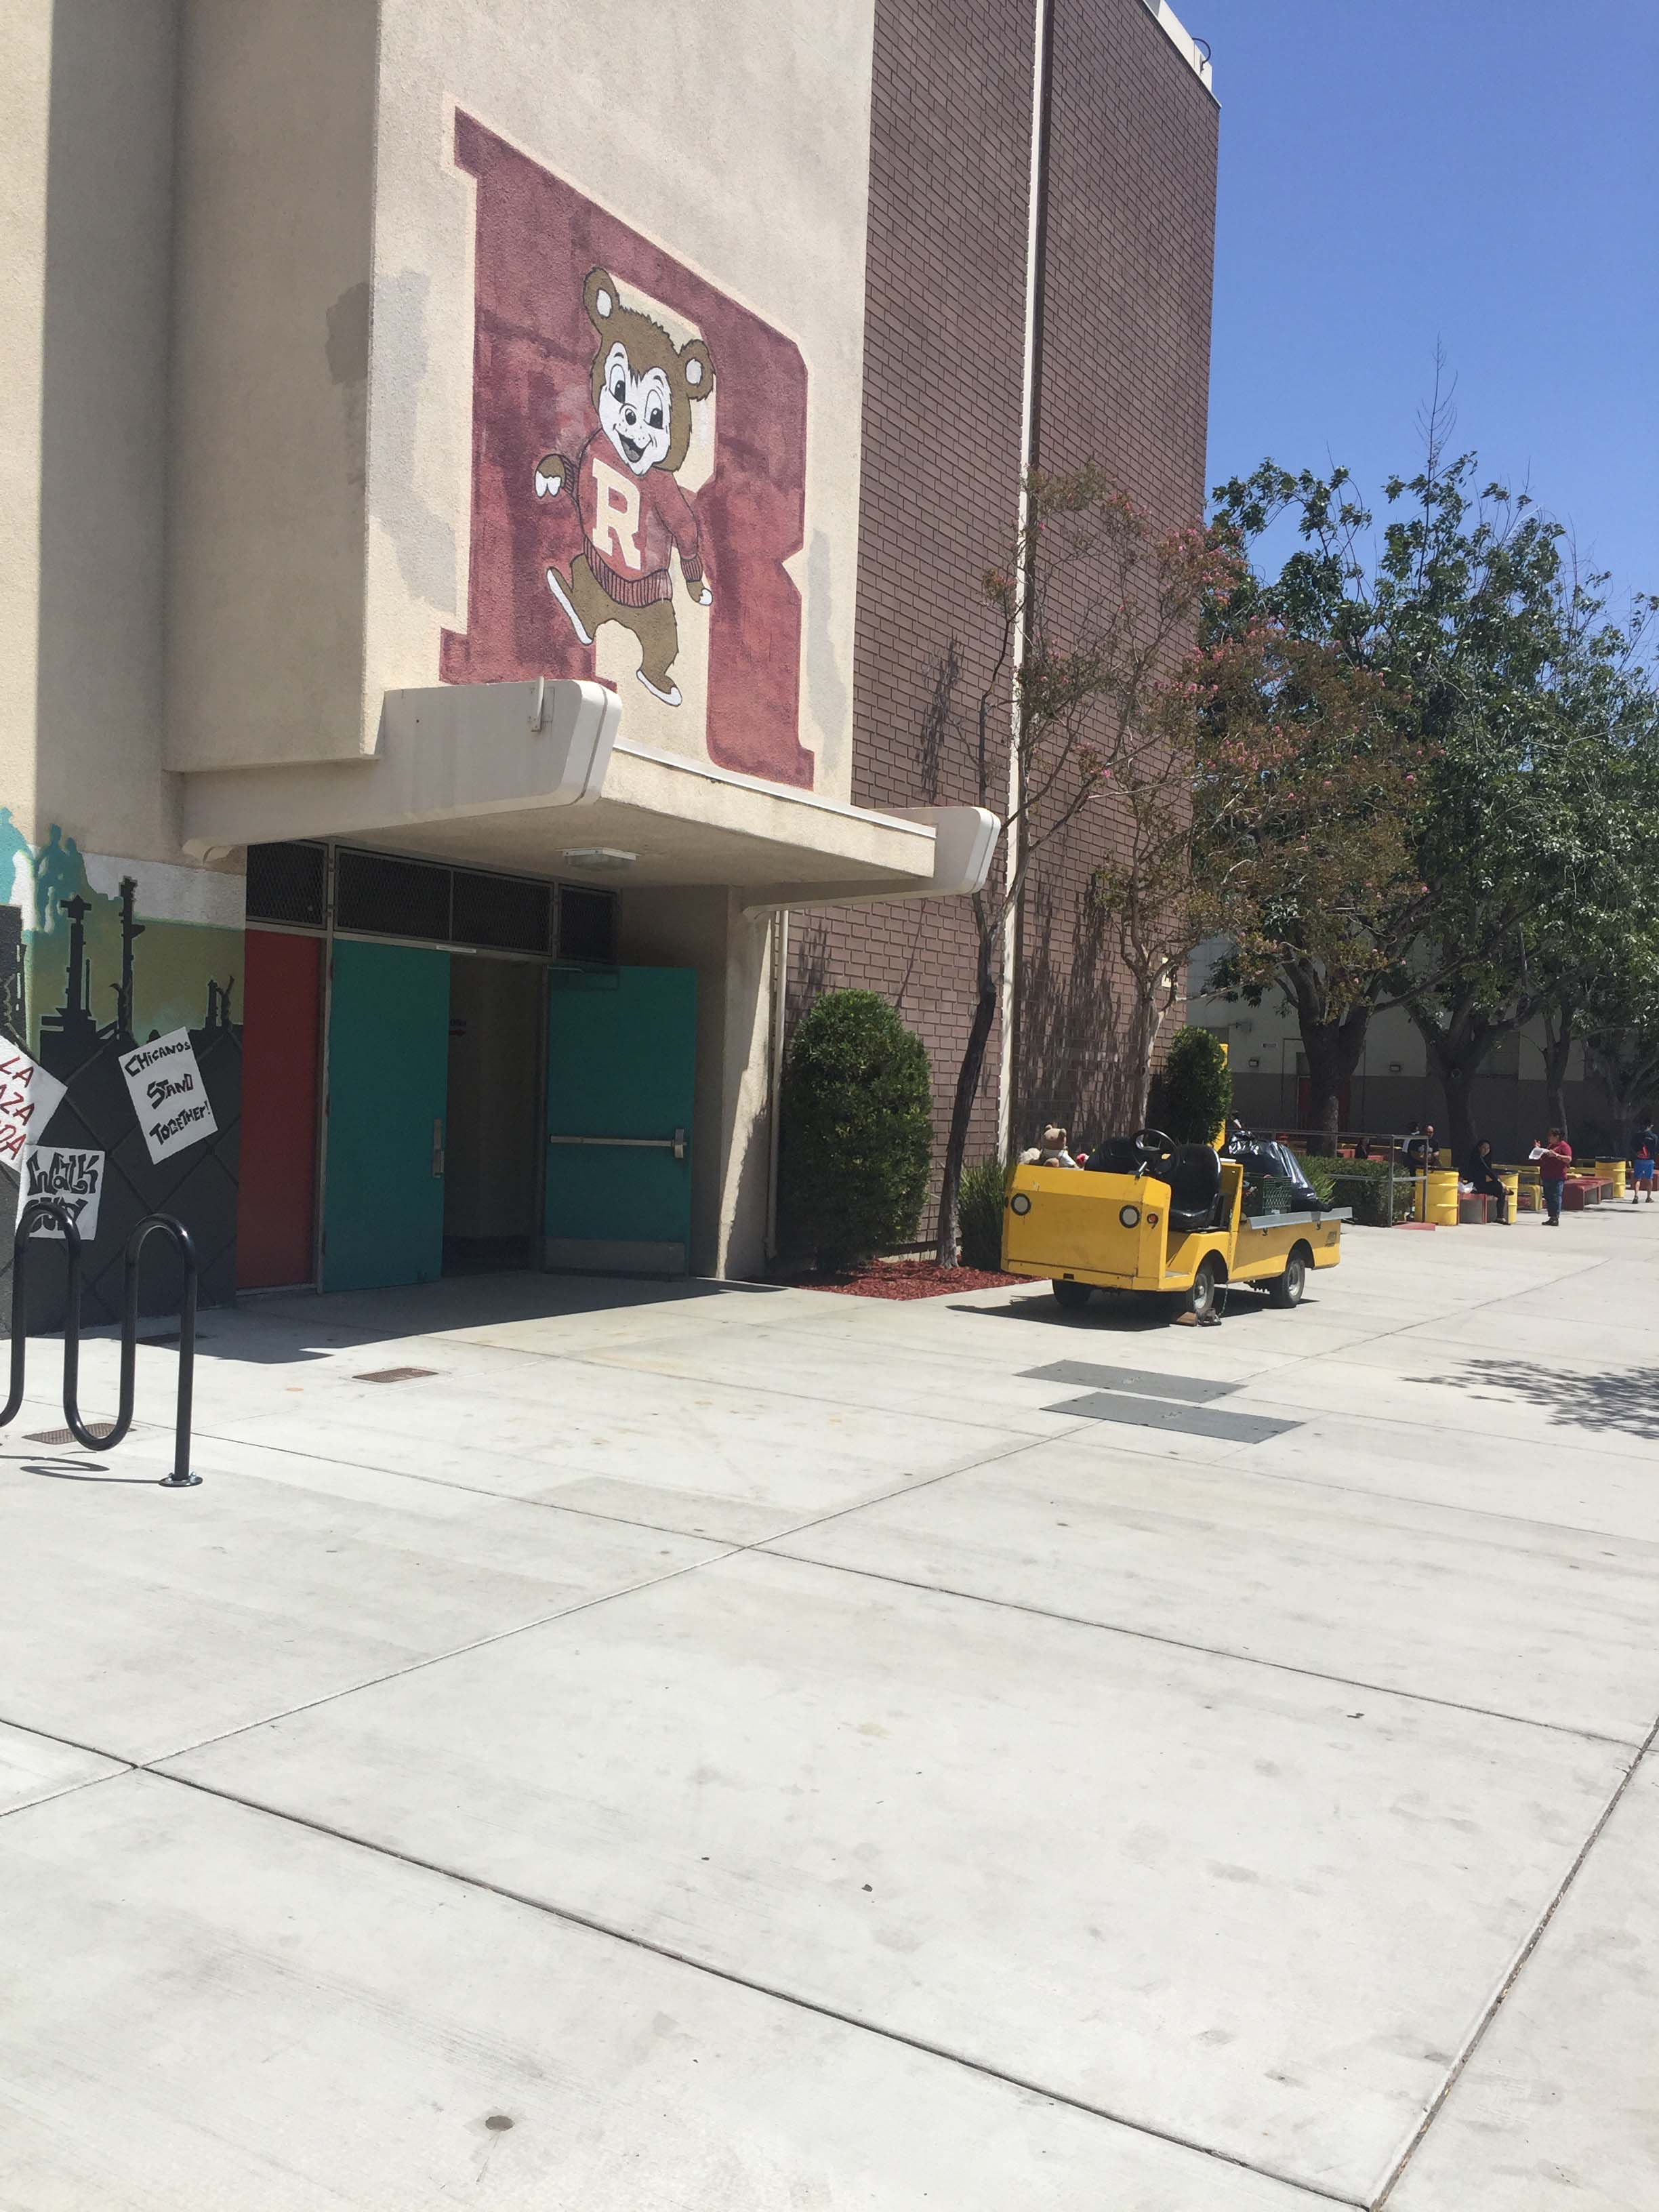 Roosevelt High School, Los Angeles,California-美国加州洛杉矶SAT考场测评